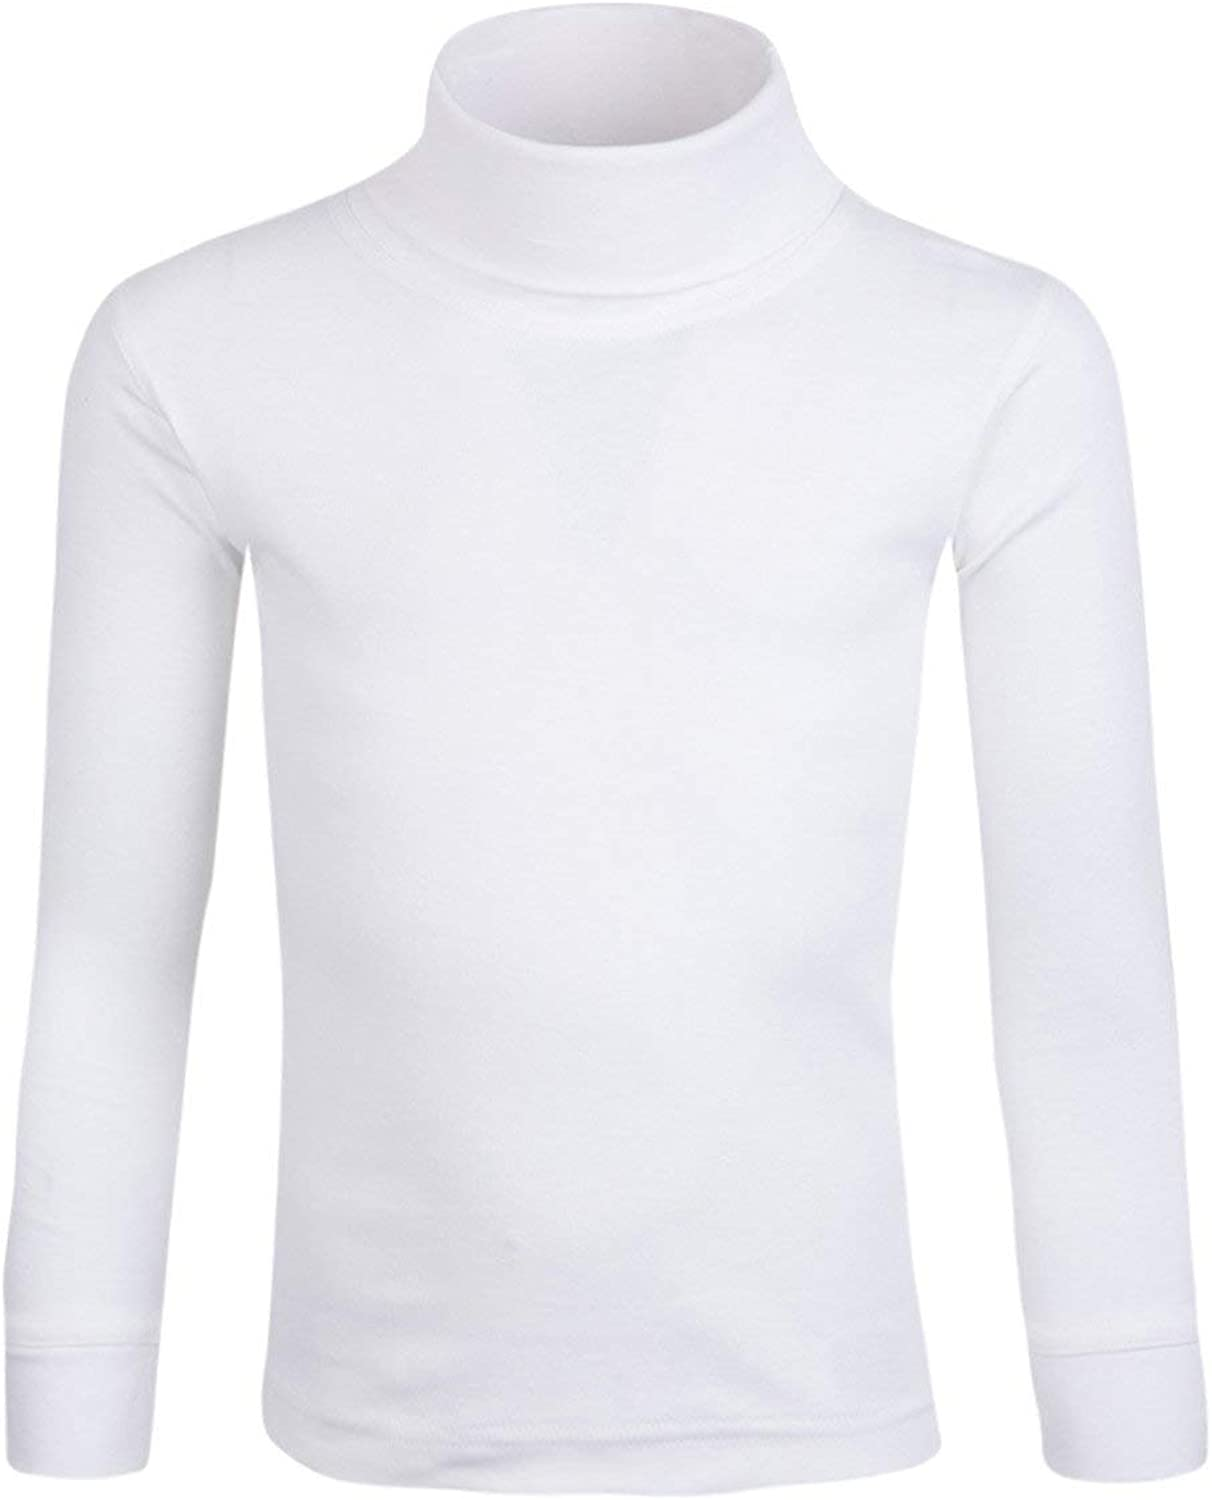 100/% Cotton Thermal Baselayer Breathable Perfect for Children This Winter Mountain Warehouse Meribel Kids Cotton Roll Neck Top Lightweight Extremely Soft